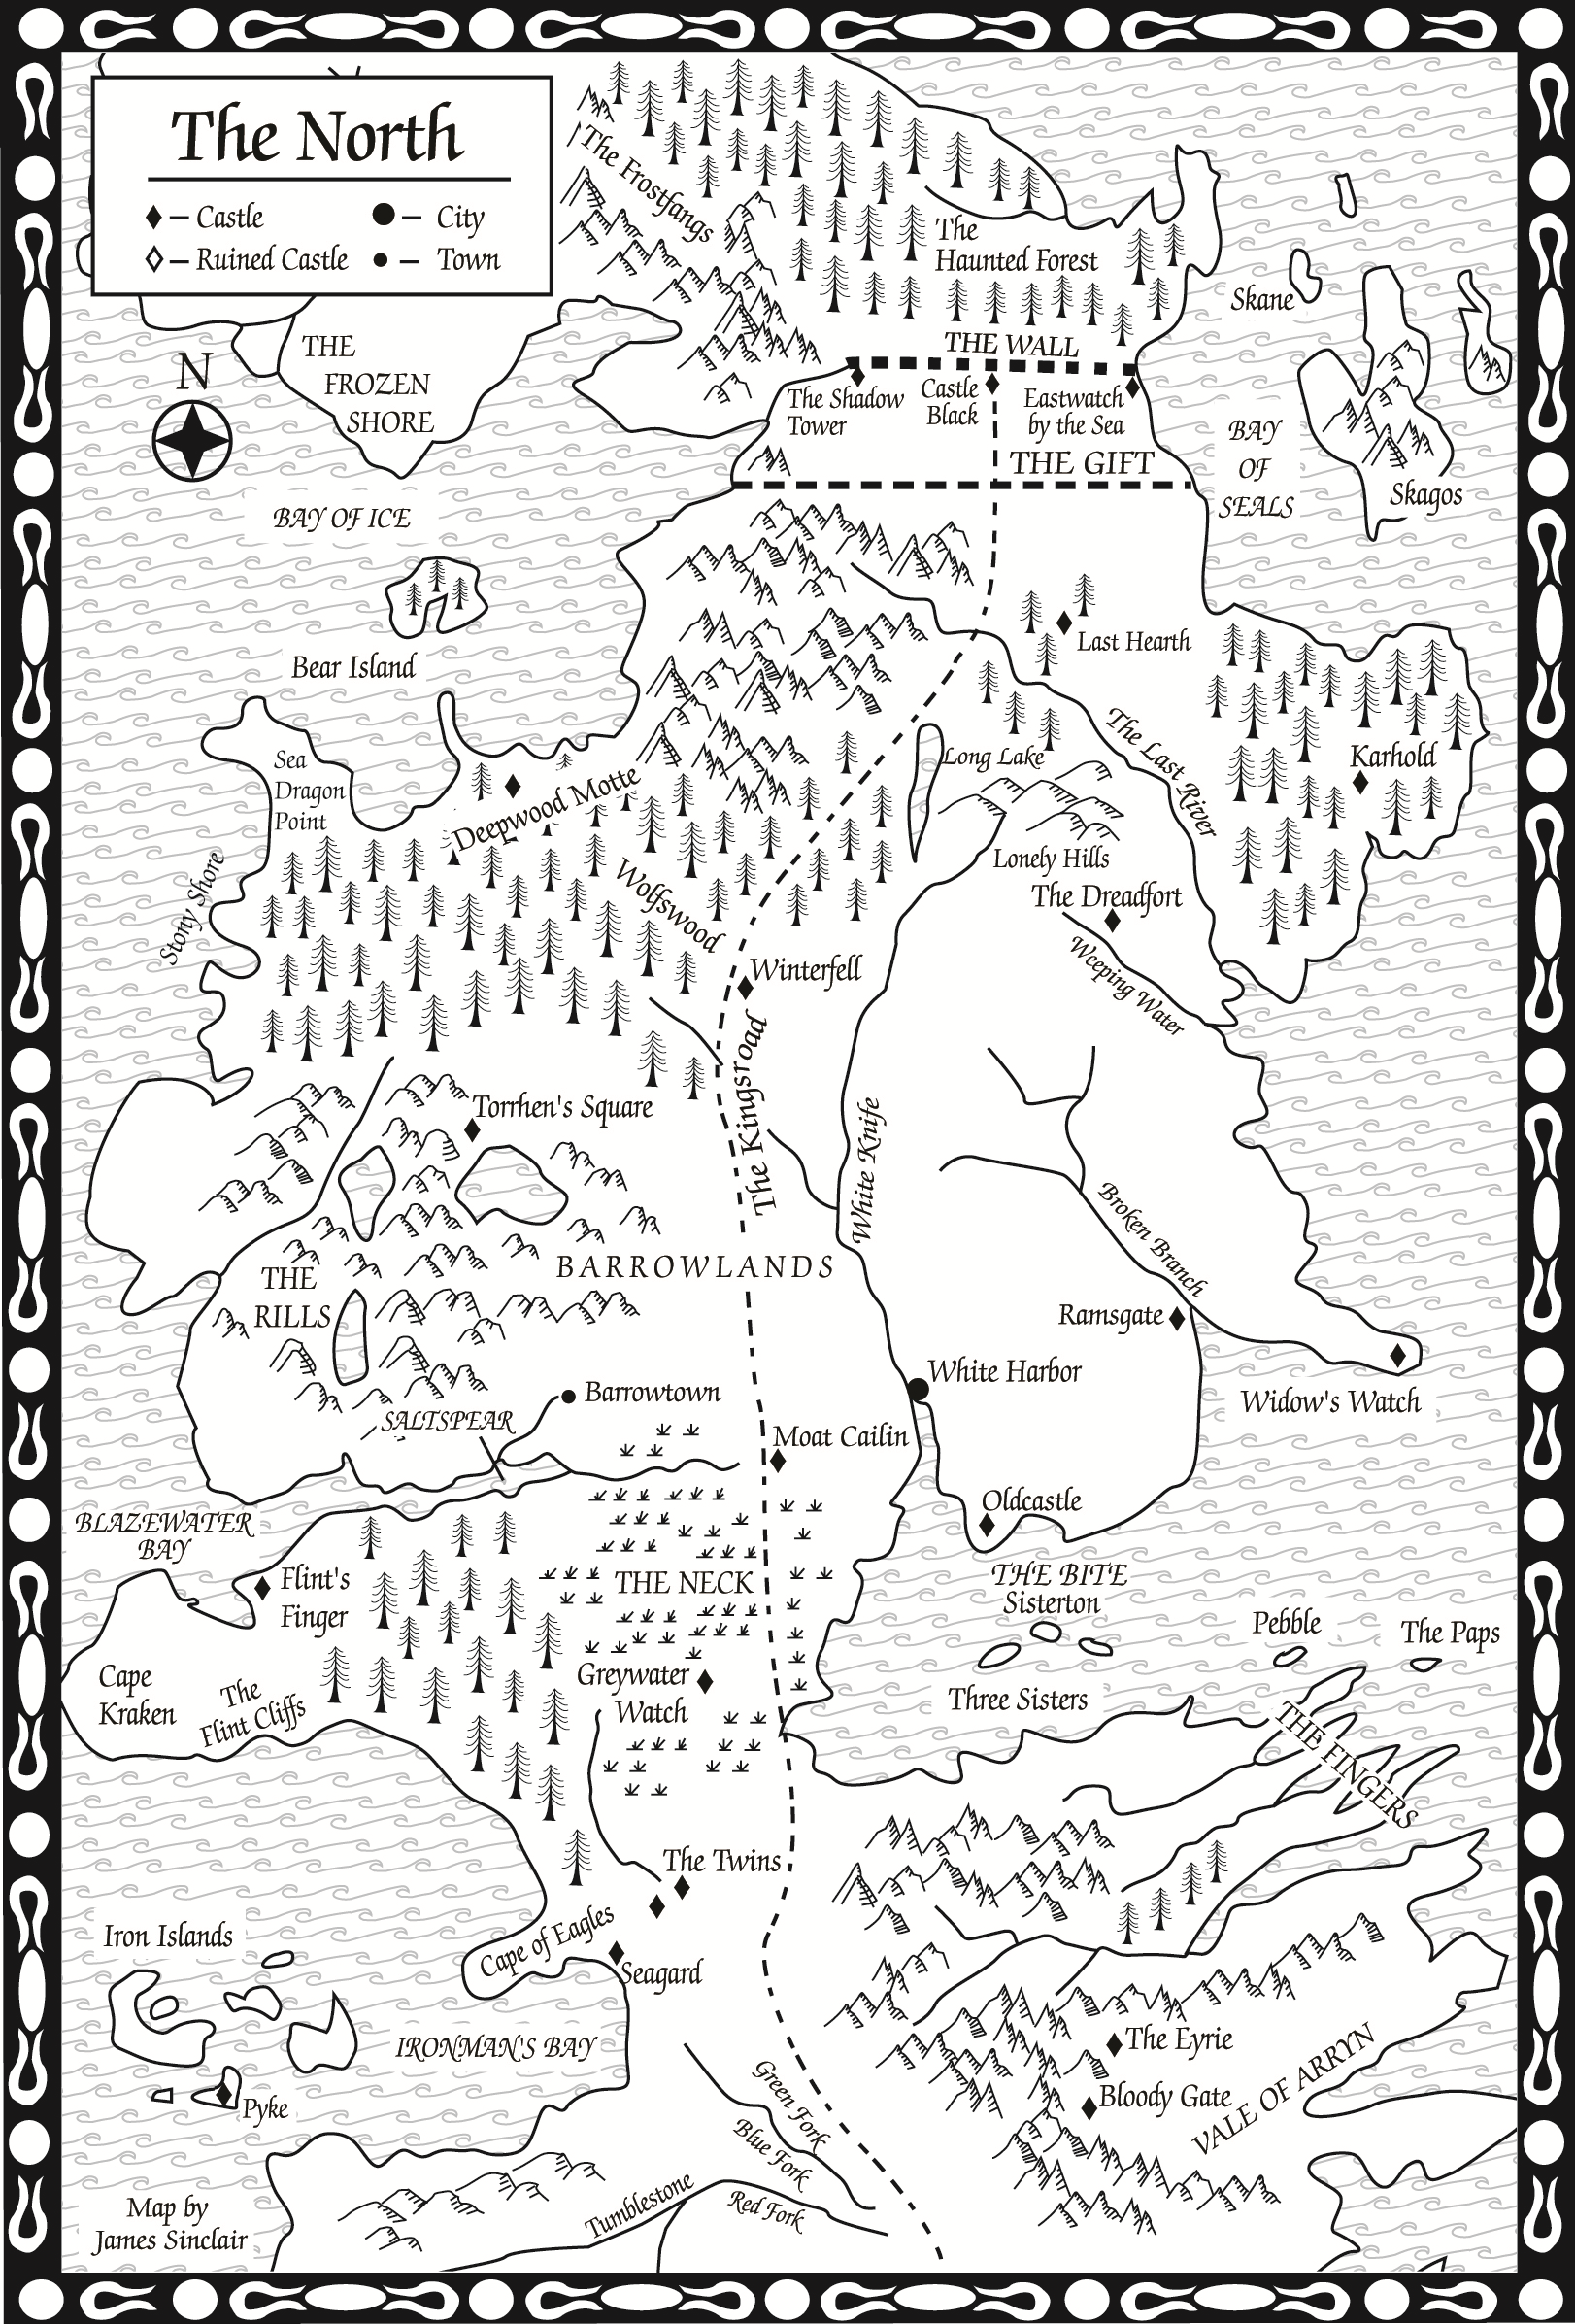 Original game of thrones maps hejorama game ofthrones the north map from a feast for crows gumiabroncs Image collections